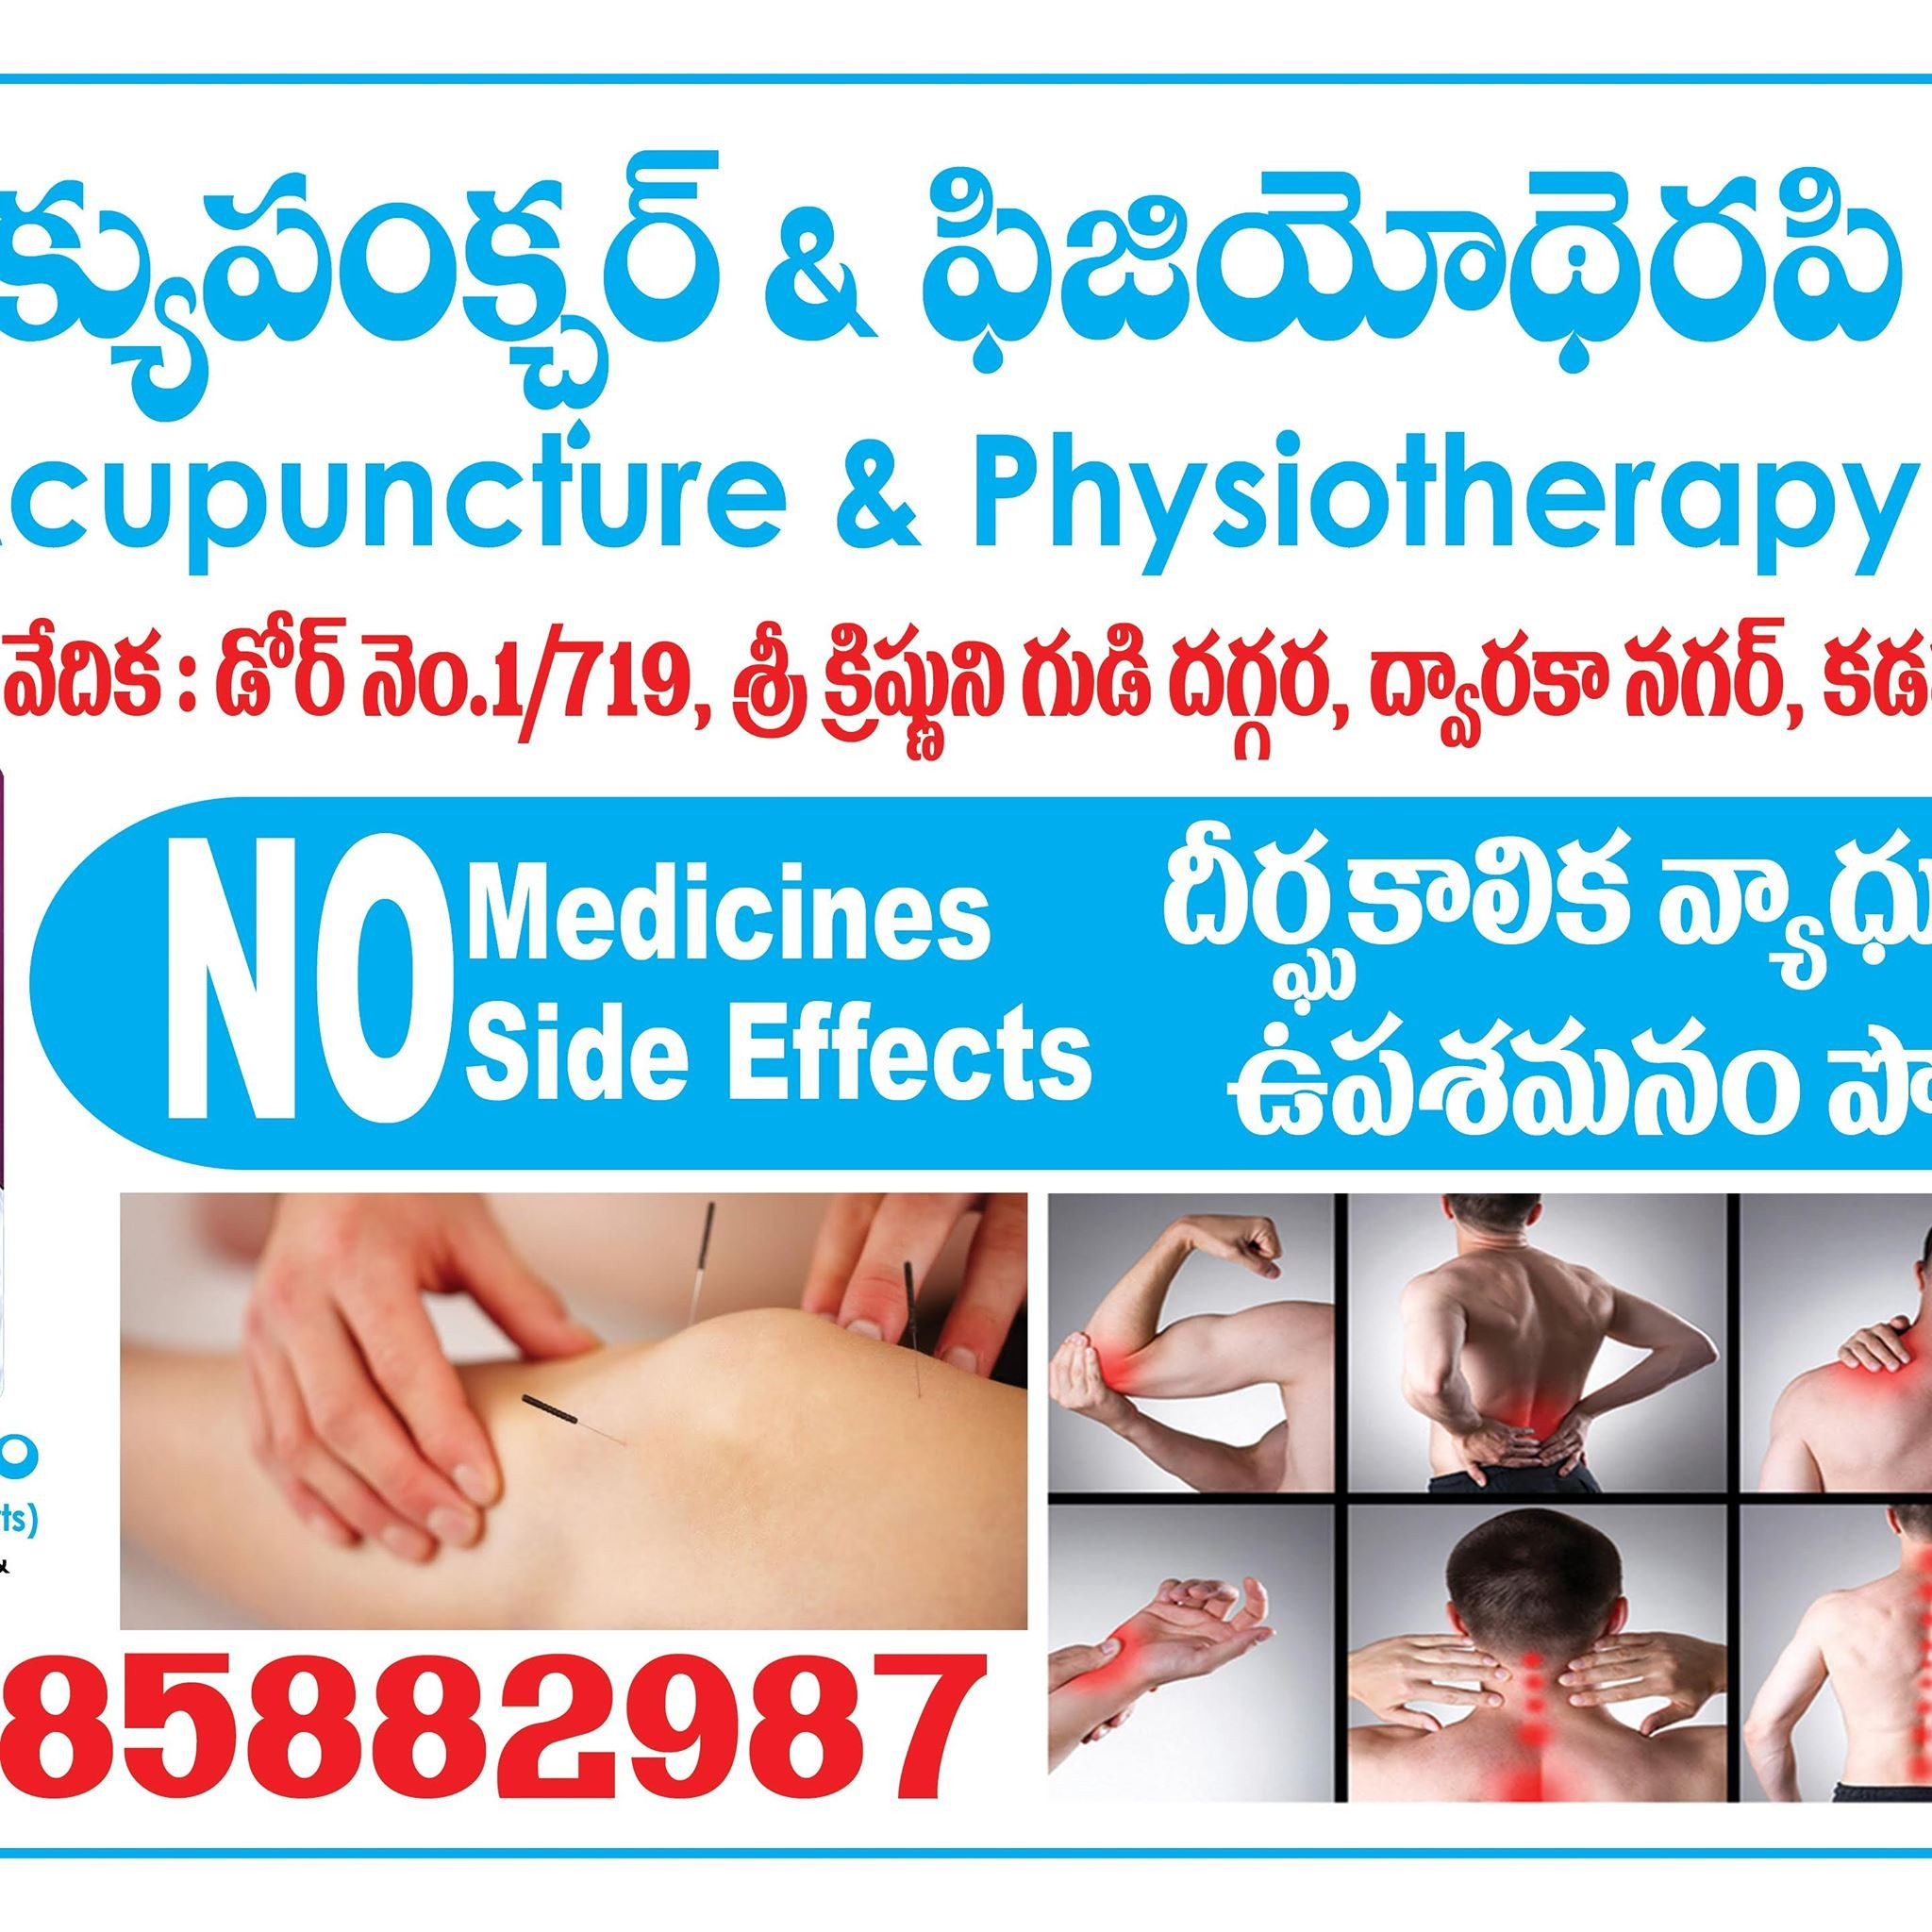 GB Acupuncture & Physiotherapy Centre